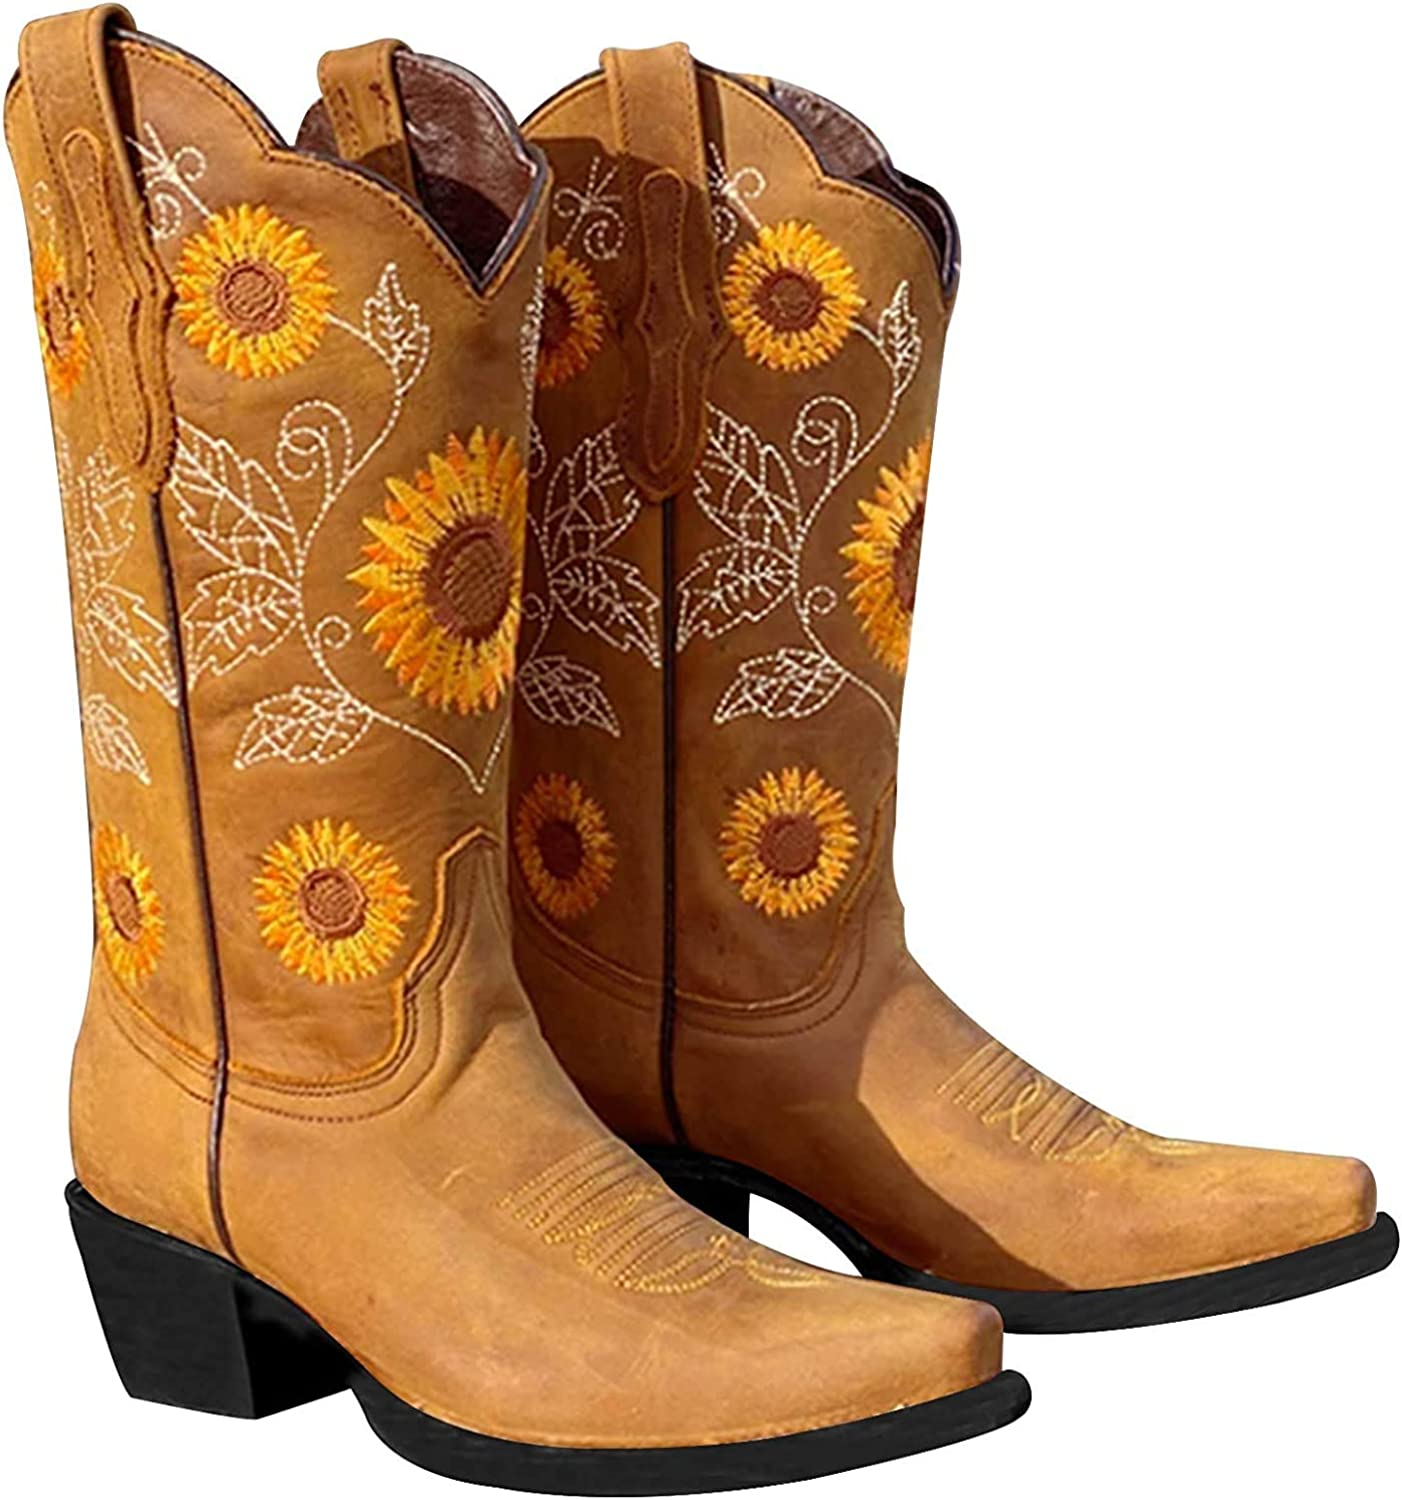 SO SIMPOK Women's Embroidered Printed Glitter Western Cowgirl Boots Retro Round Toe Mid Calf Chunky Heel Boots